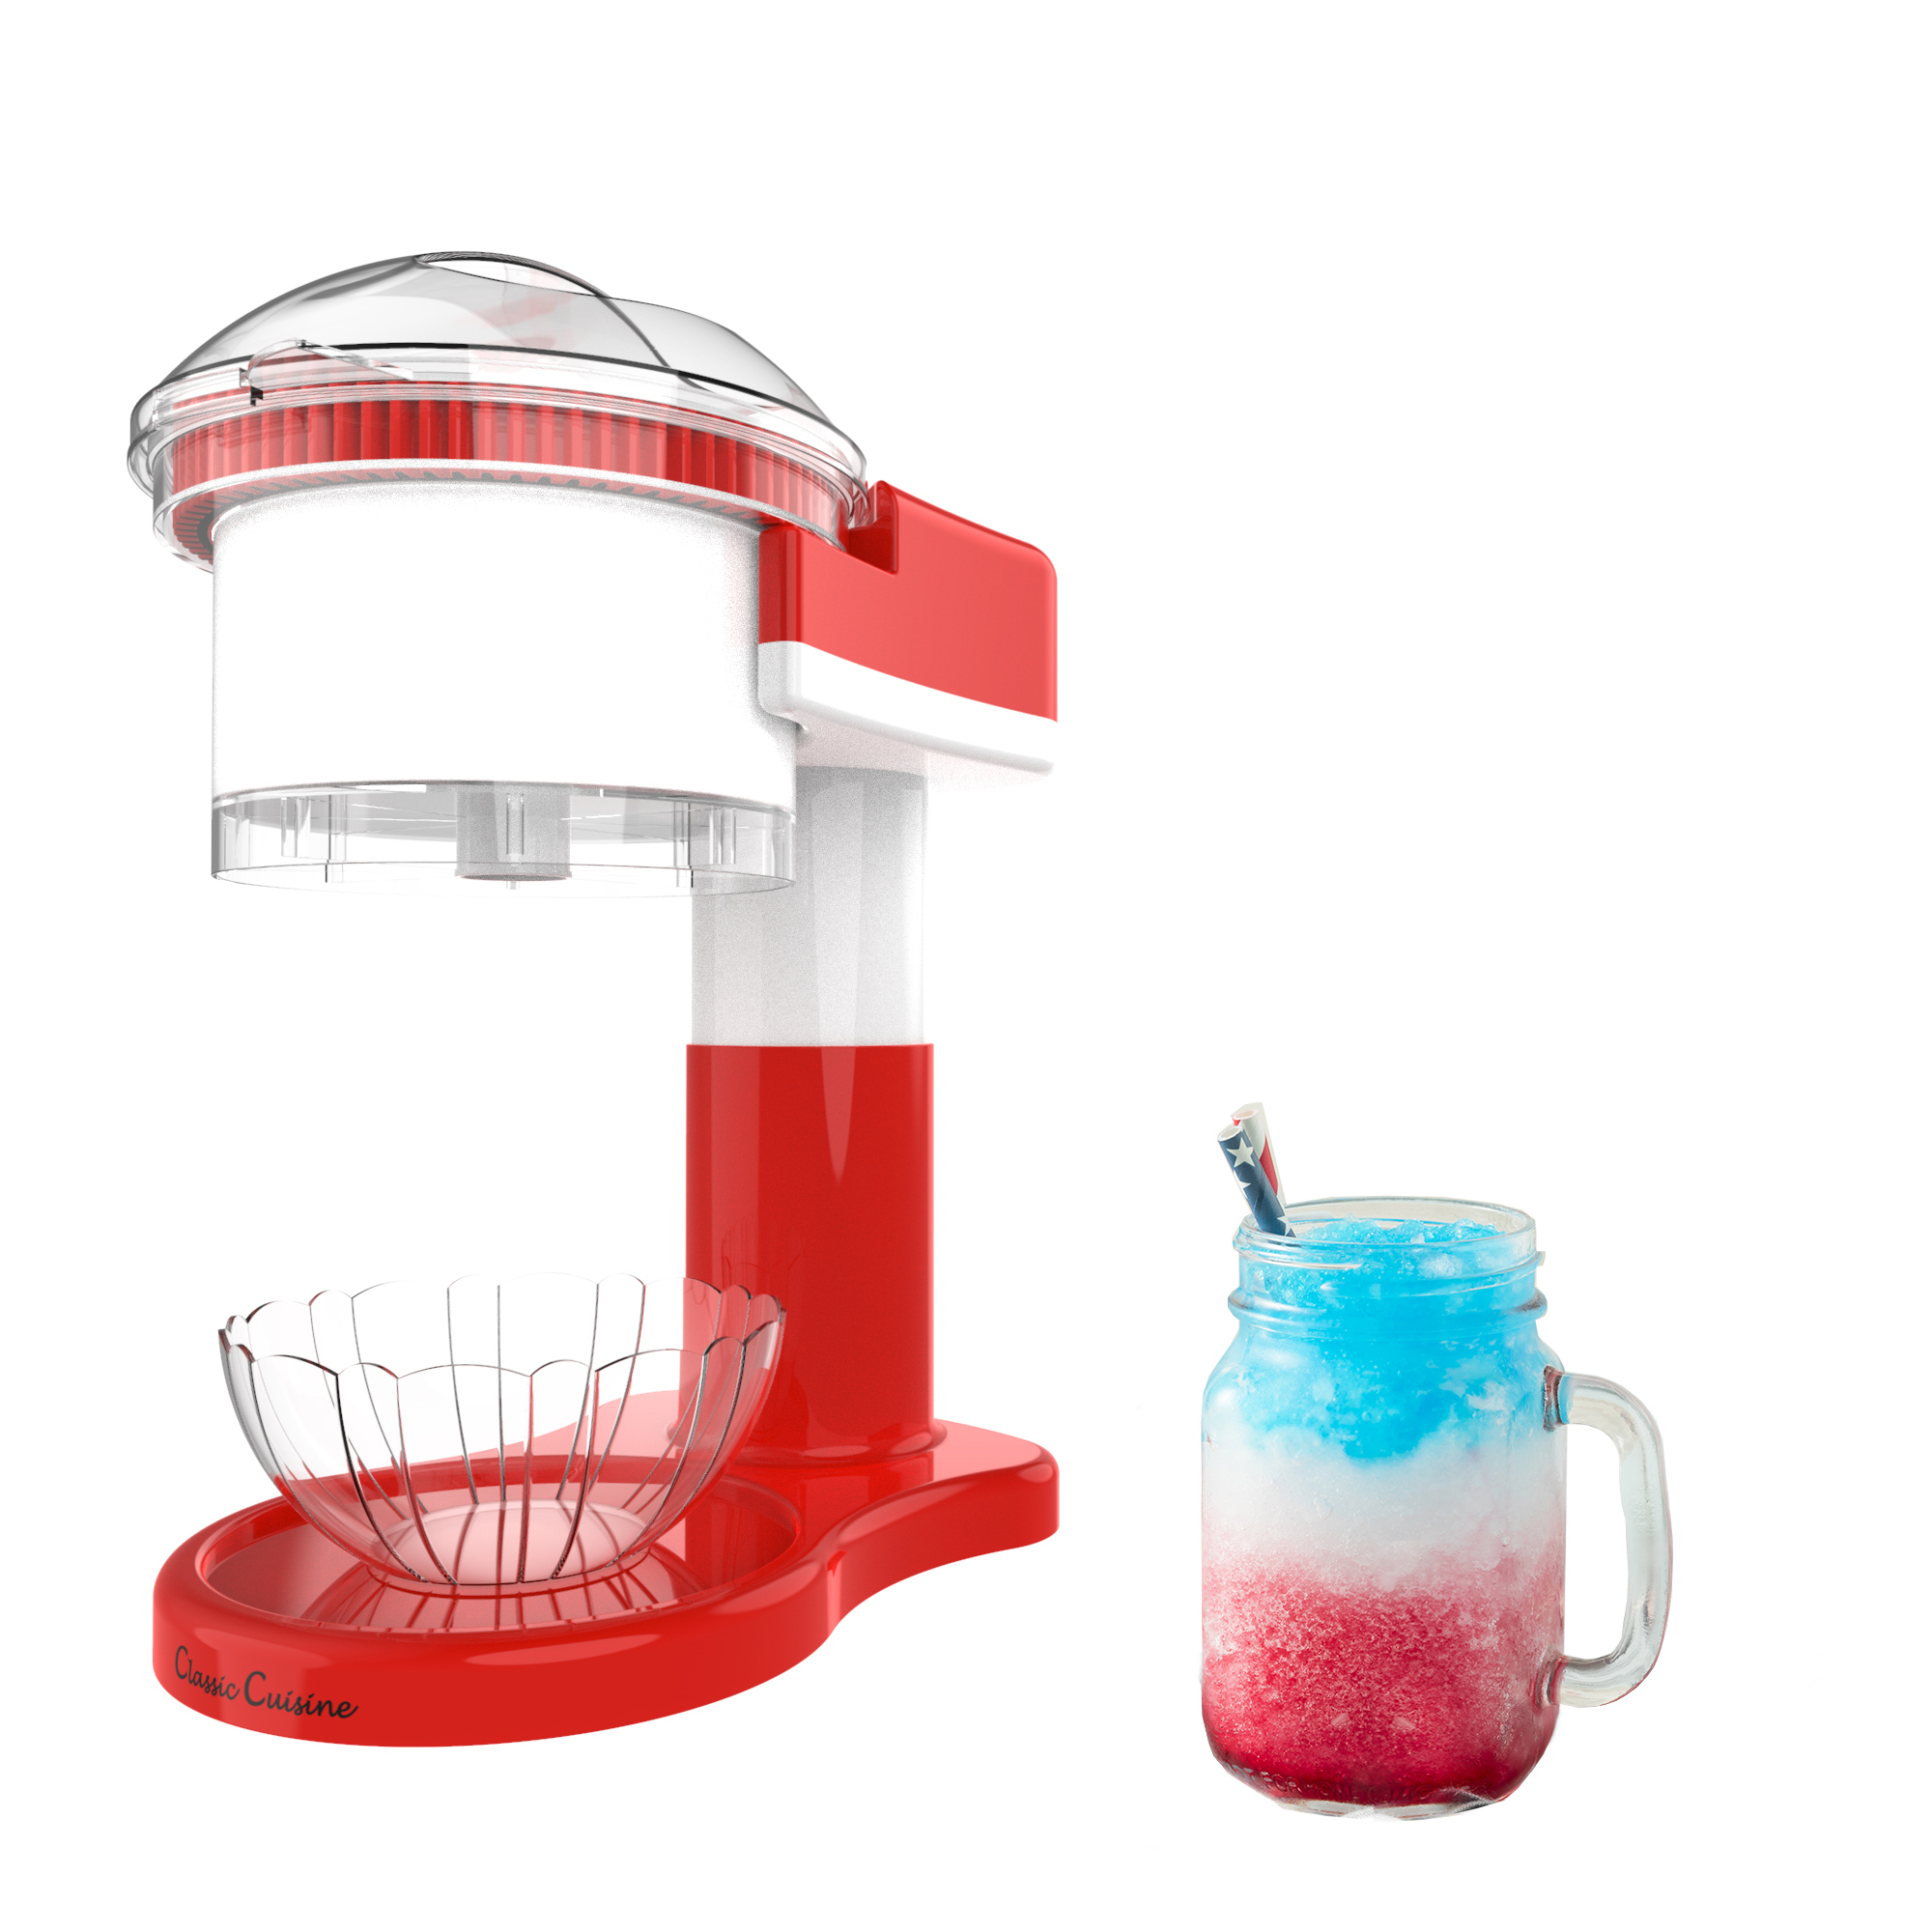 Shaved Ice Snow Cone Slushy Maker Use Ice Cubes Easy at Home Counter Top